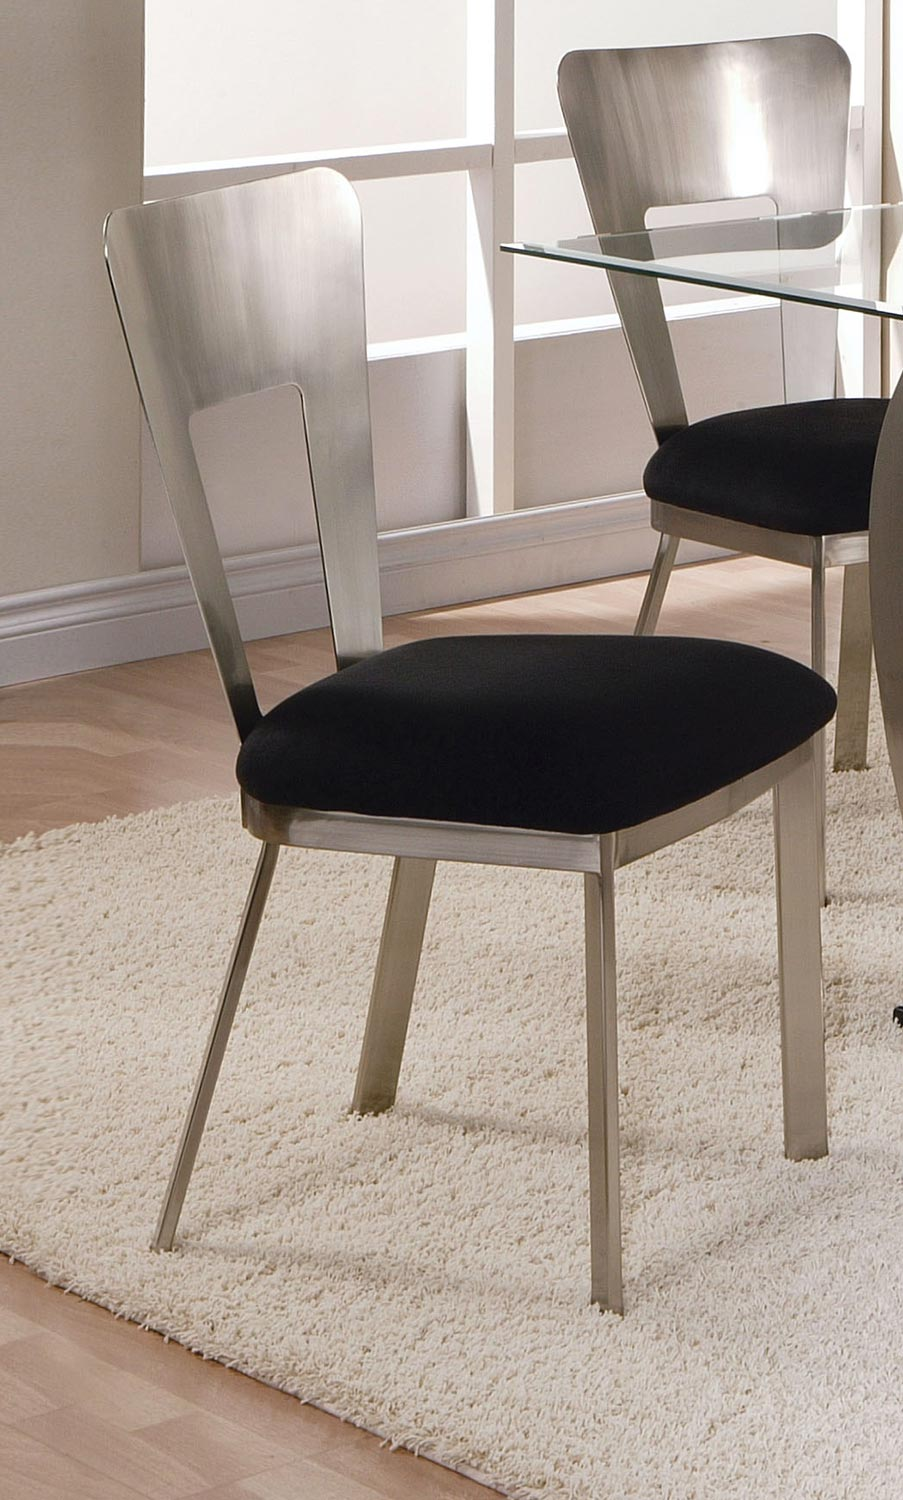 Acme Camille Side Chair - Black Mfb/Satin Plated